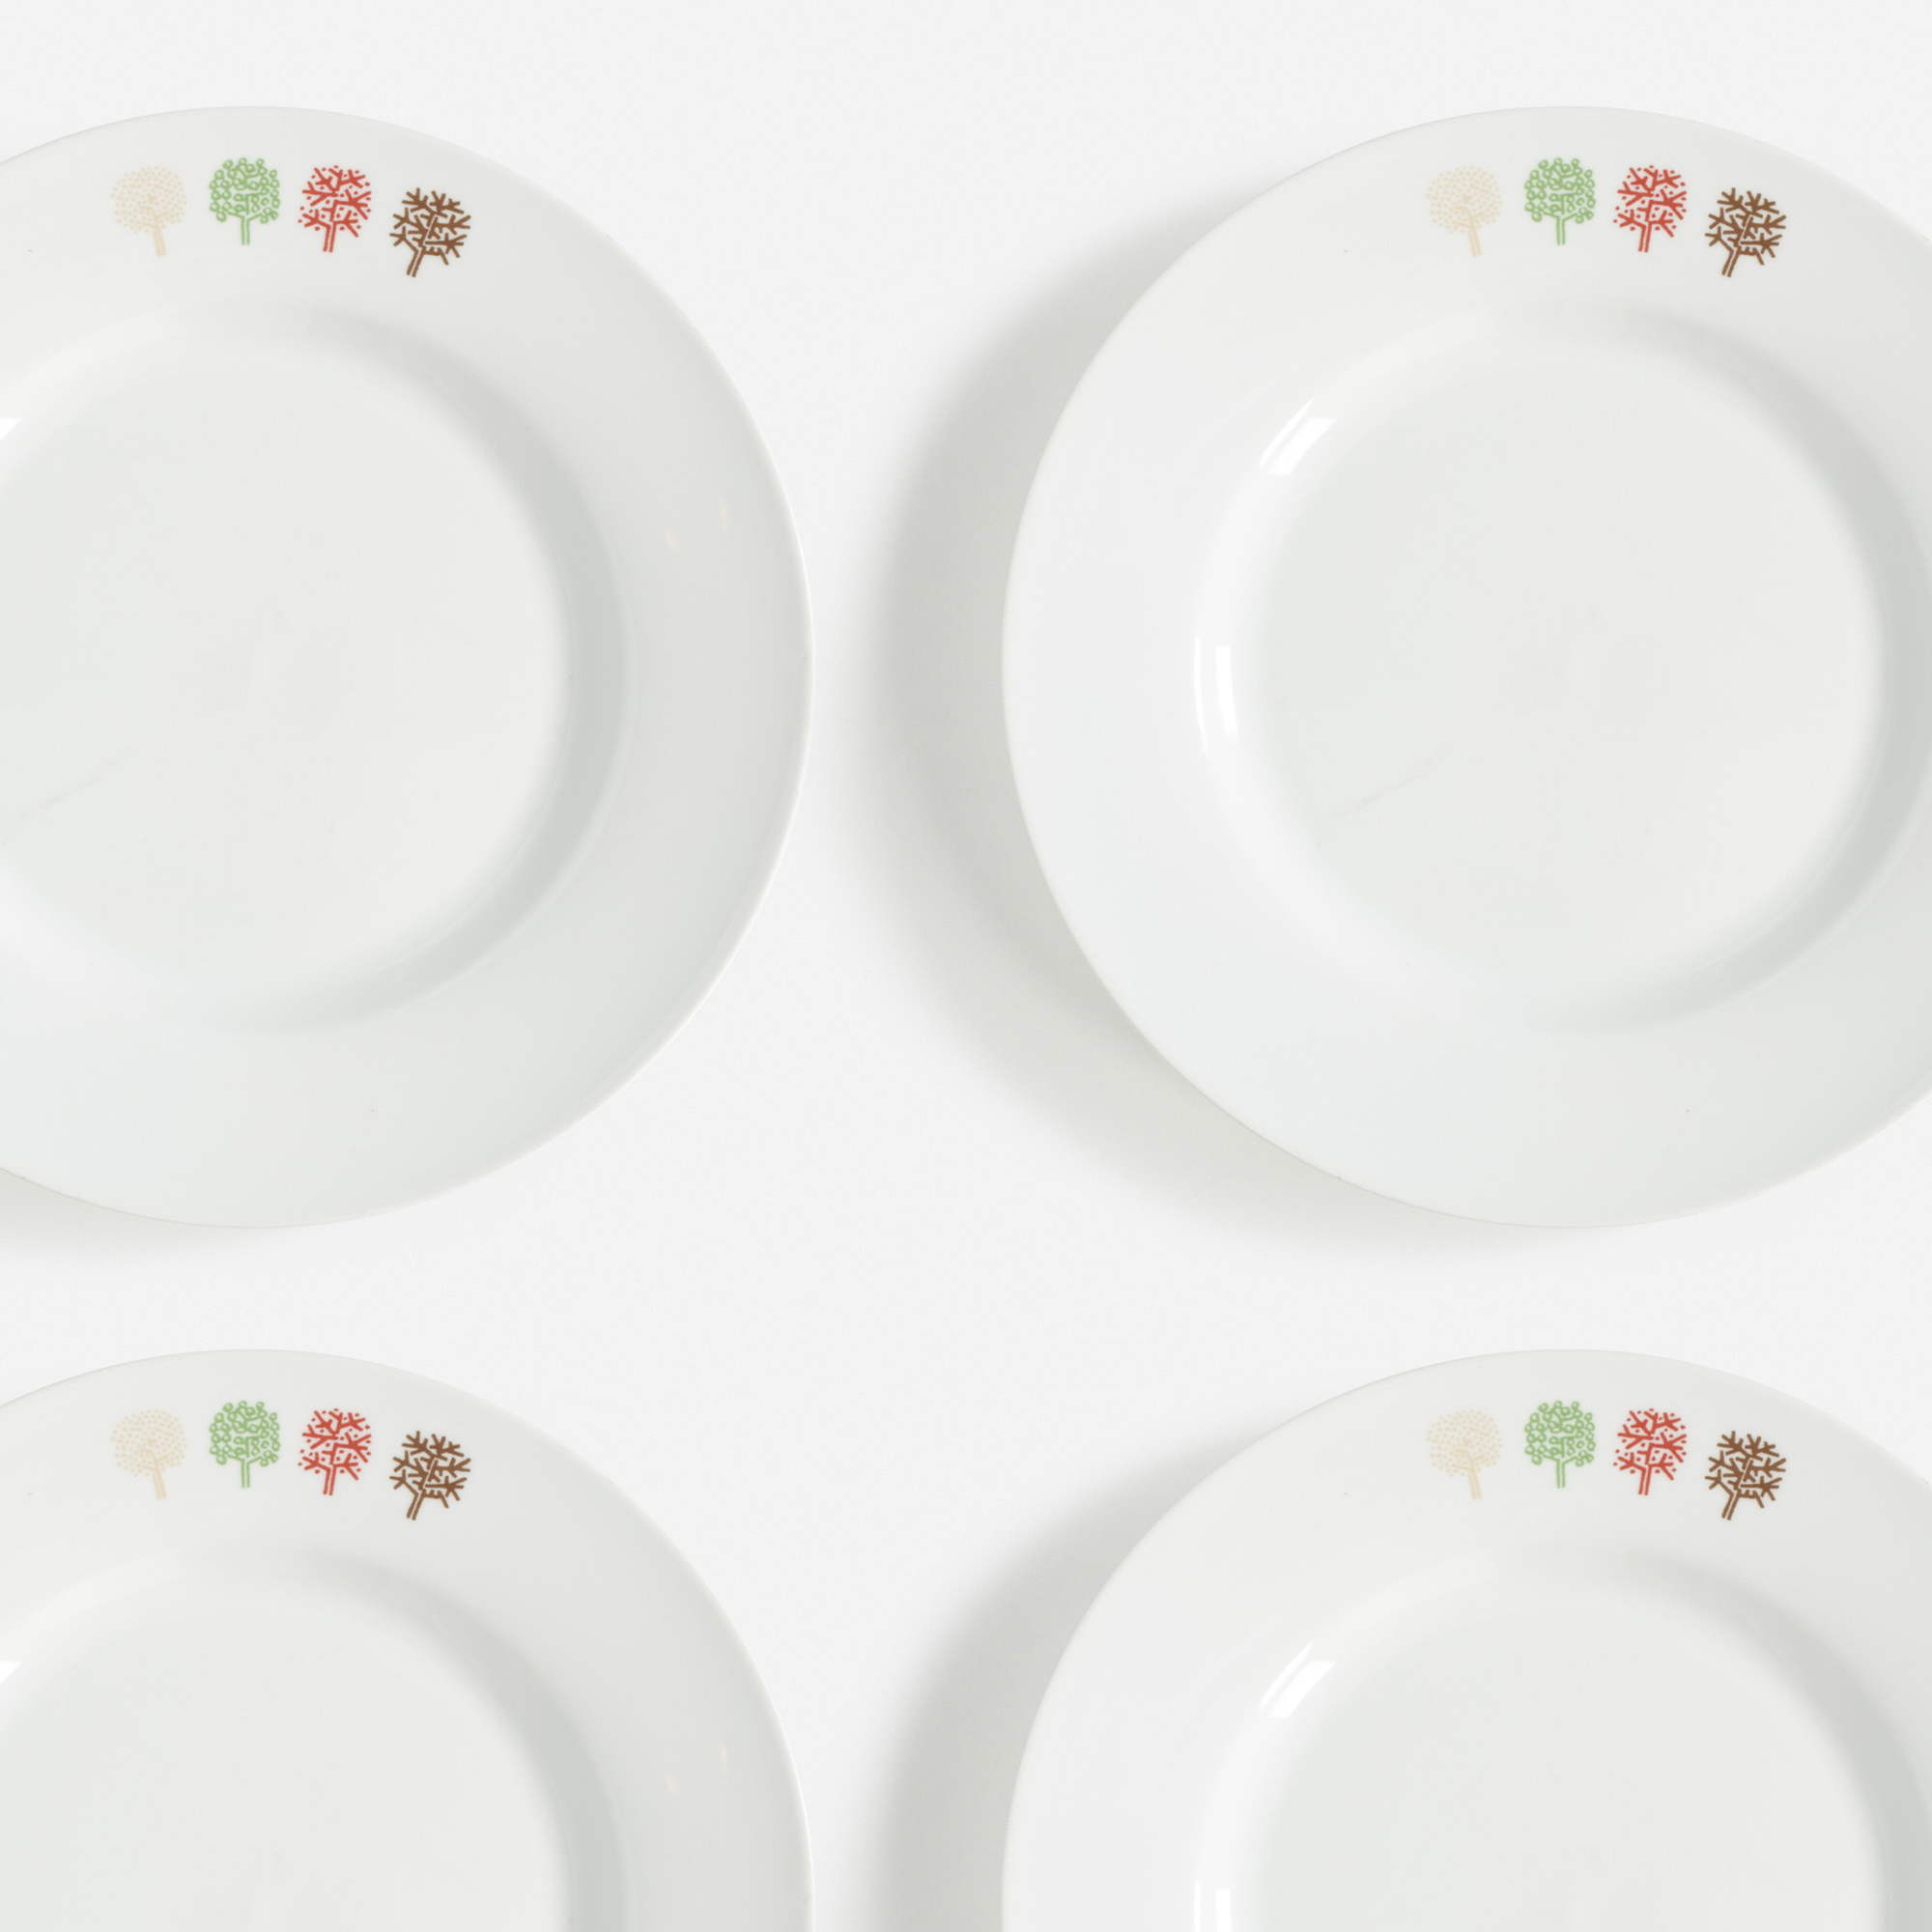 443:  / Four Seasons plates, set of twelve (1 of 1)